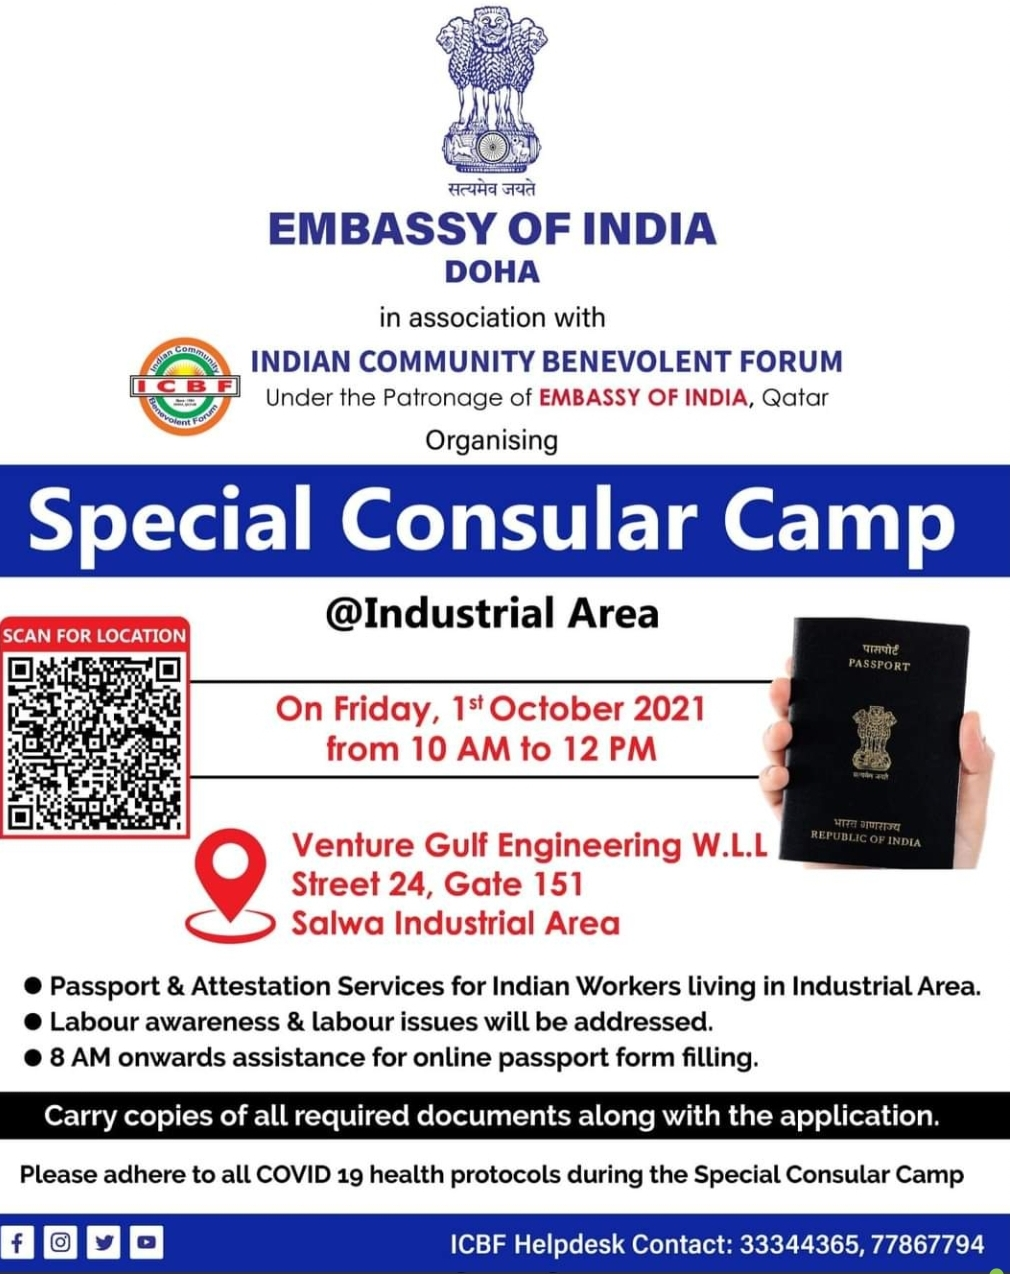 Coming Friday - 1st October, 2021 at Industrial Area. Passport Renewal, Attestations, Power of Attorney and Labour related queries. Do spread to all the camps in Industrial Area so that all Indian workers can take benefits from these services